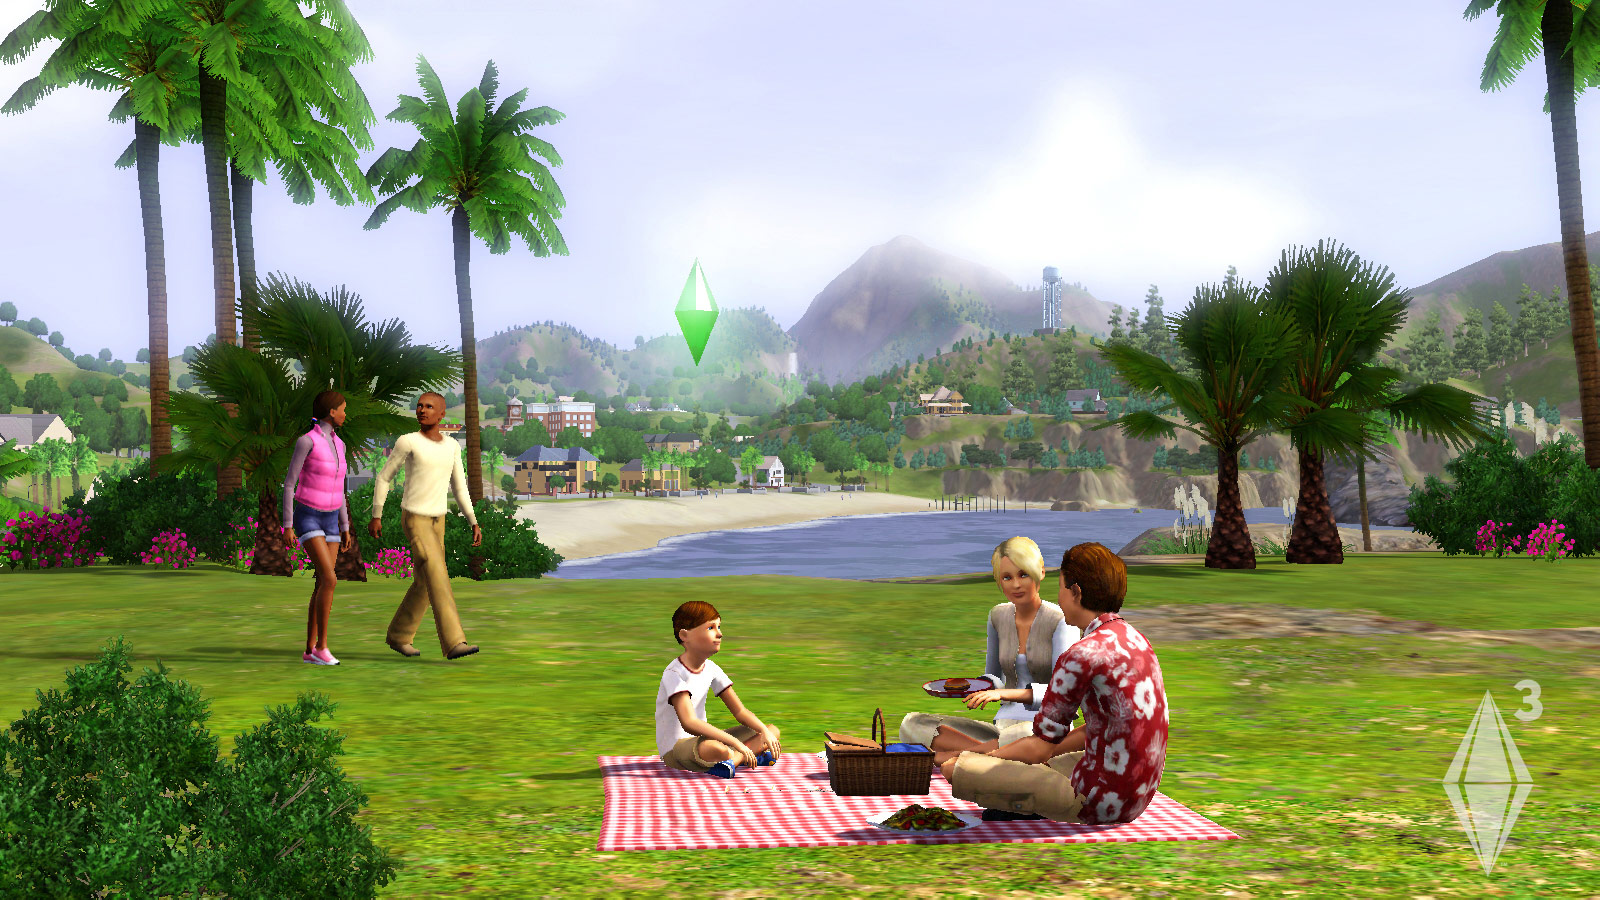 Free download the sims 3 pc game full version 21 for Schaukelstuhl sims 3